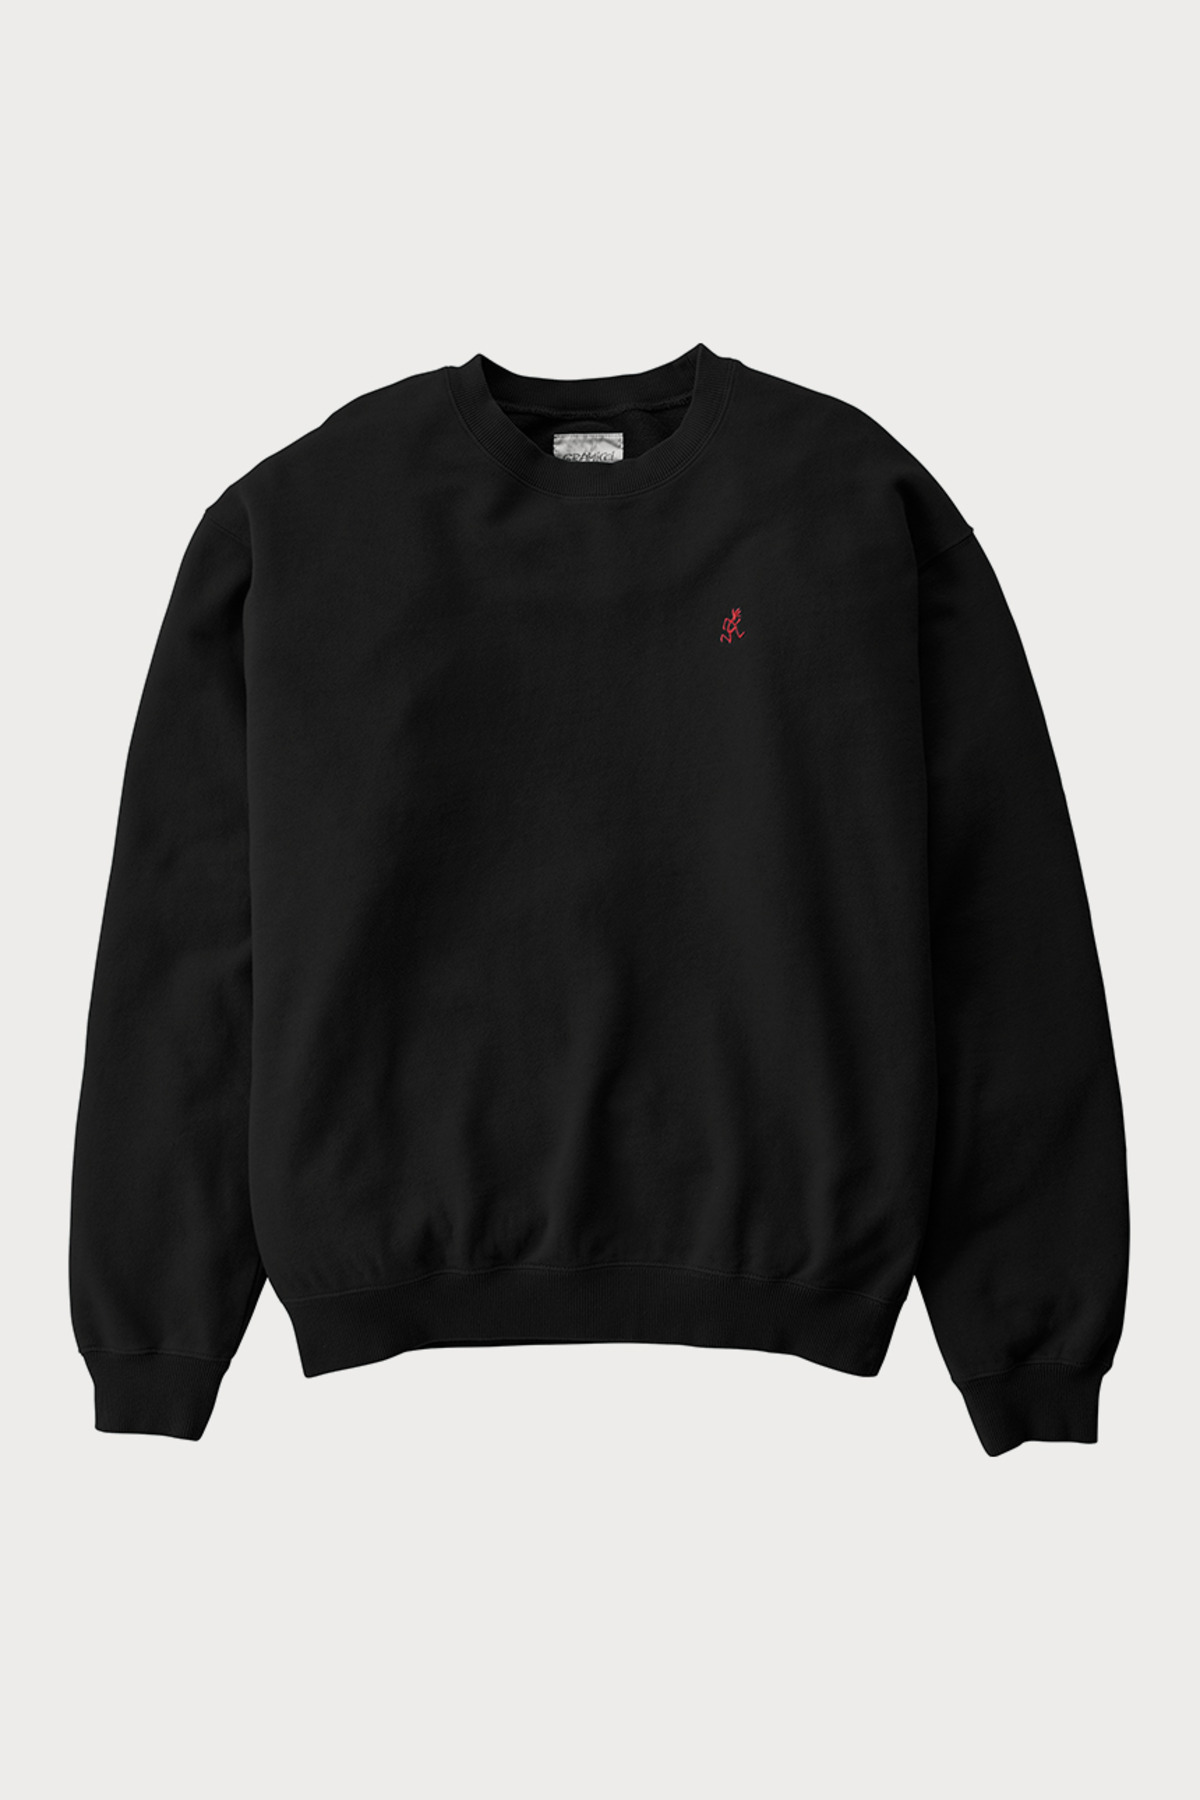 SWEAT SHIRTS BLACK